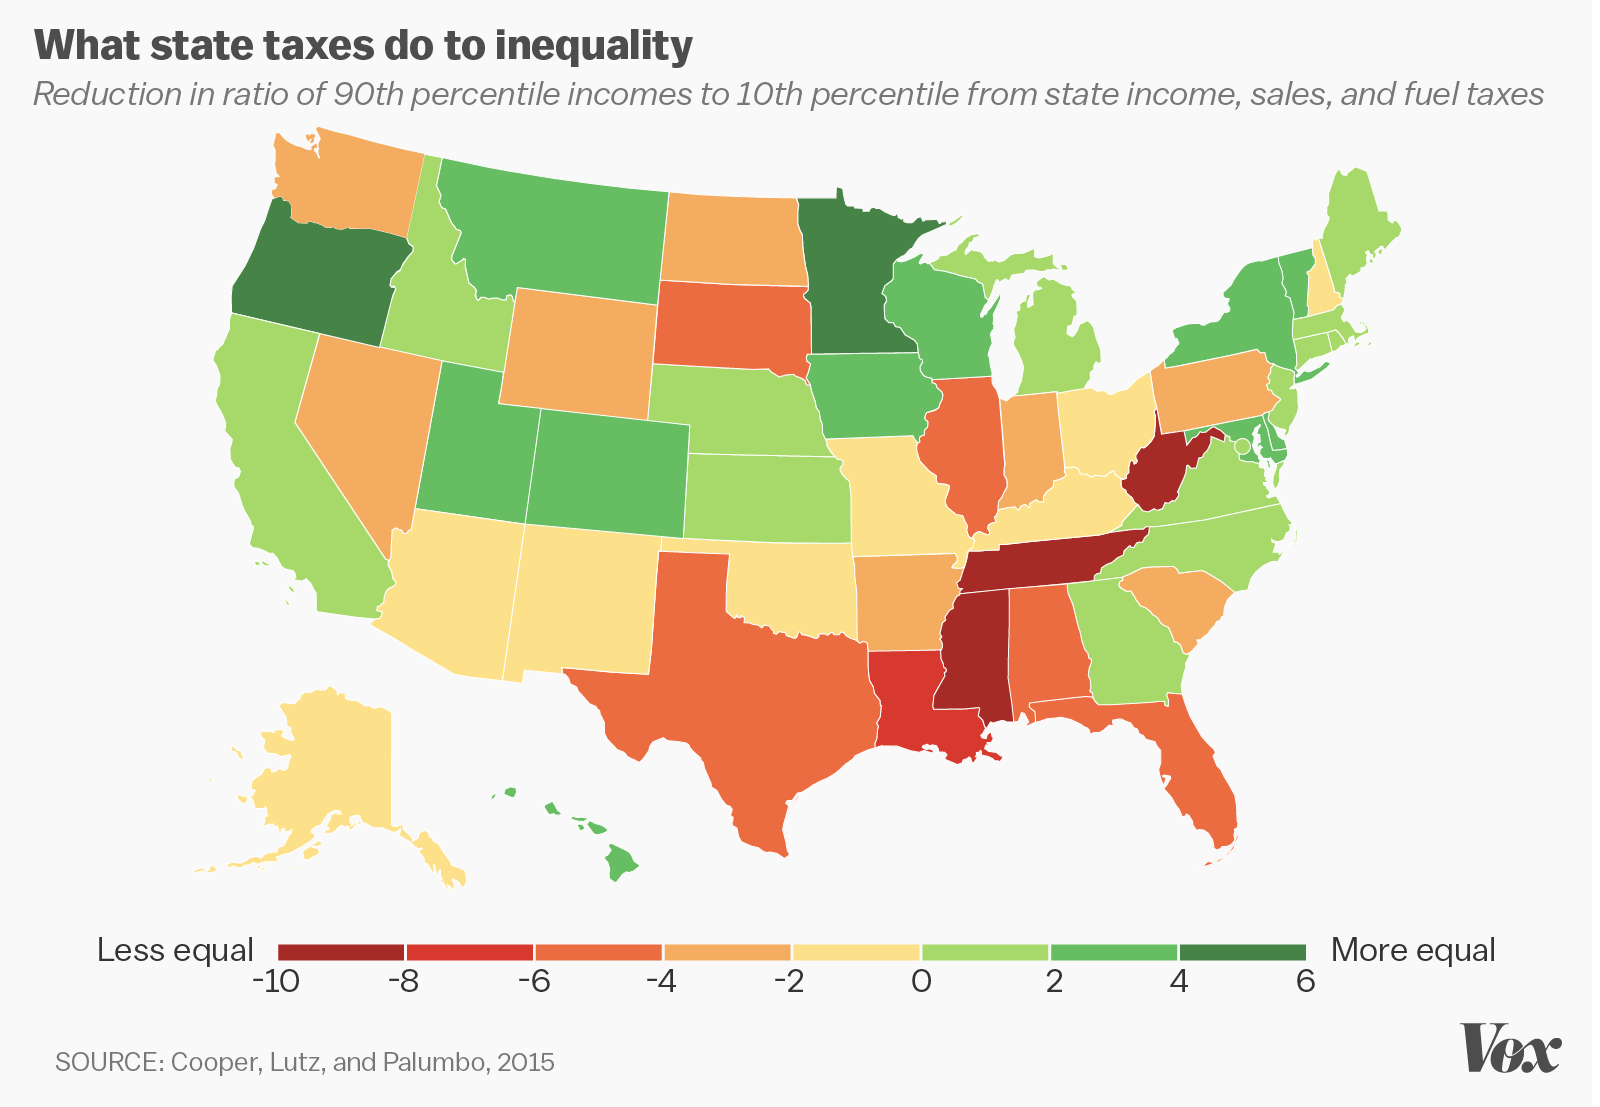 This map shows how red states increase inequality and blue states cut it